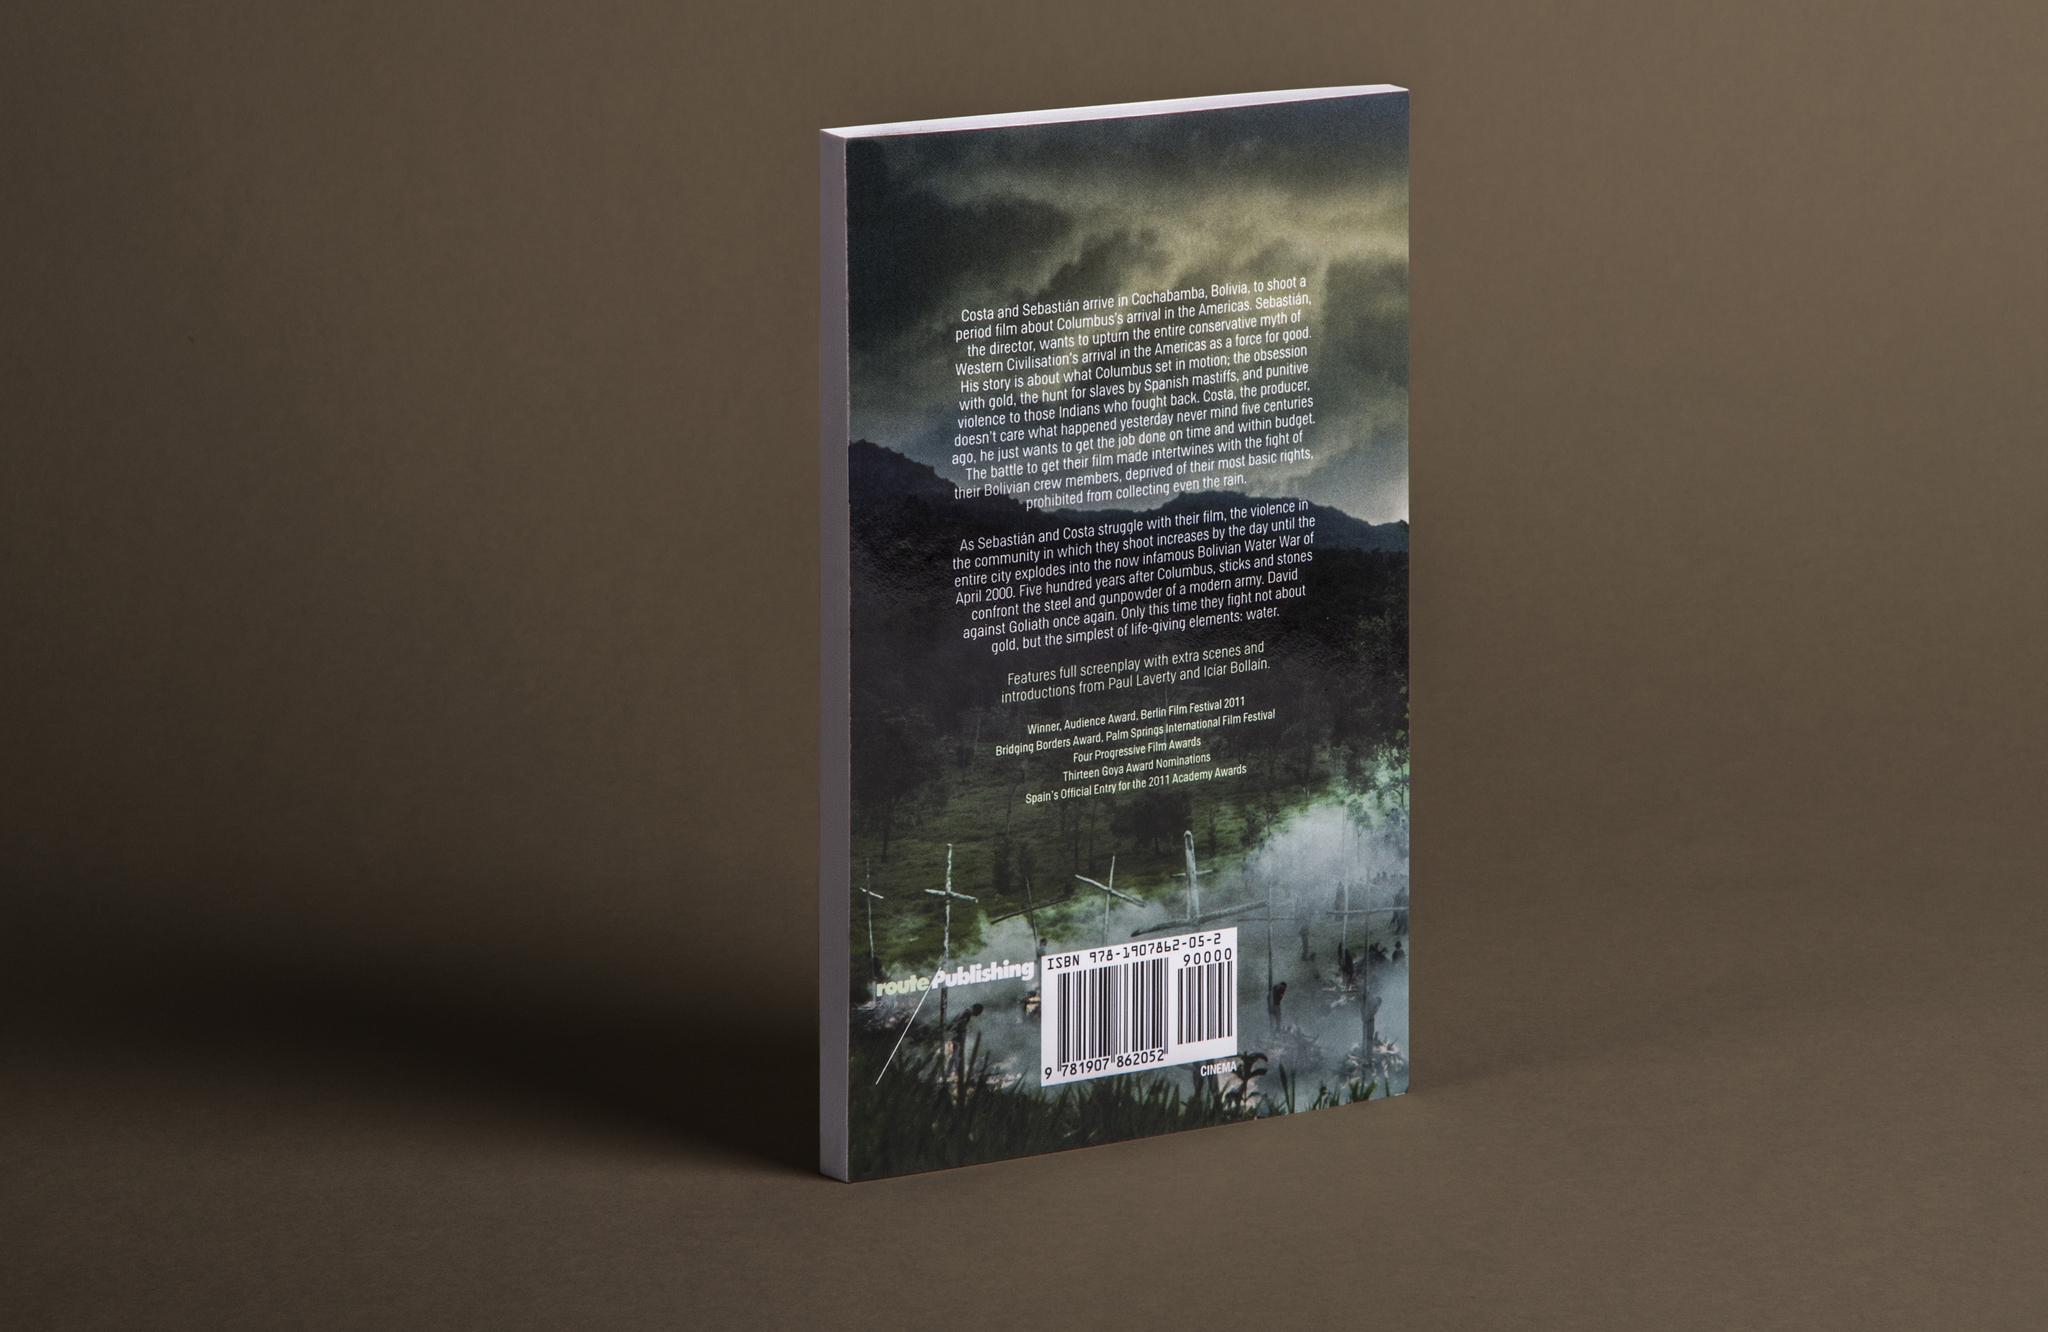 book-covers-ash-spurr_0006_Layer 9